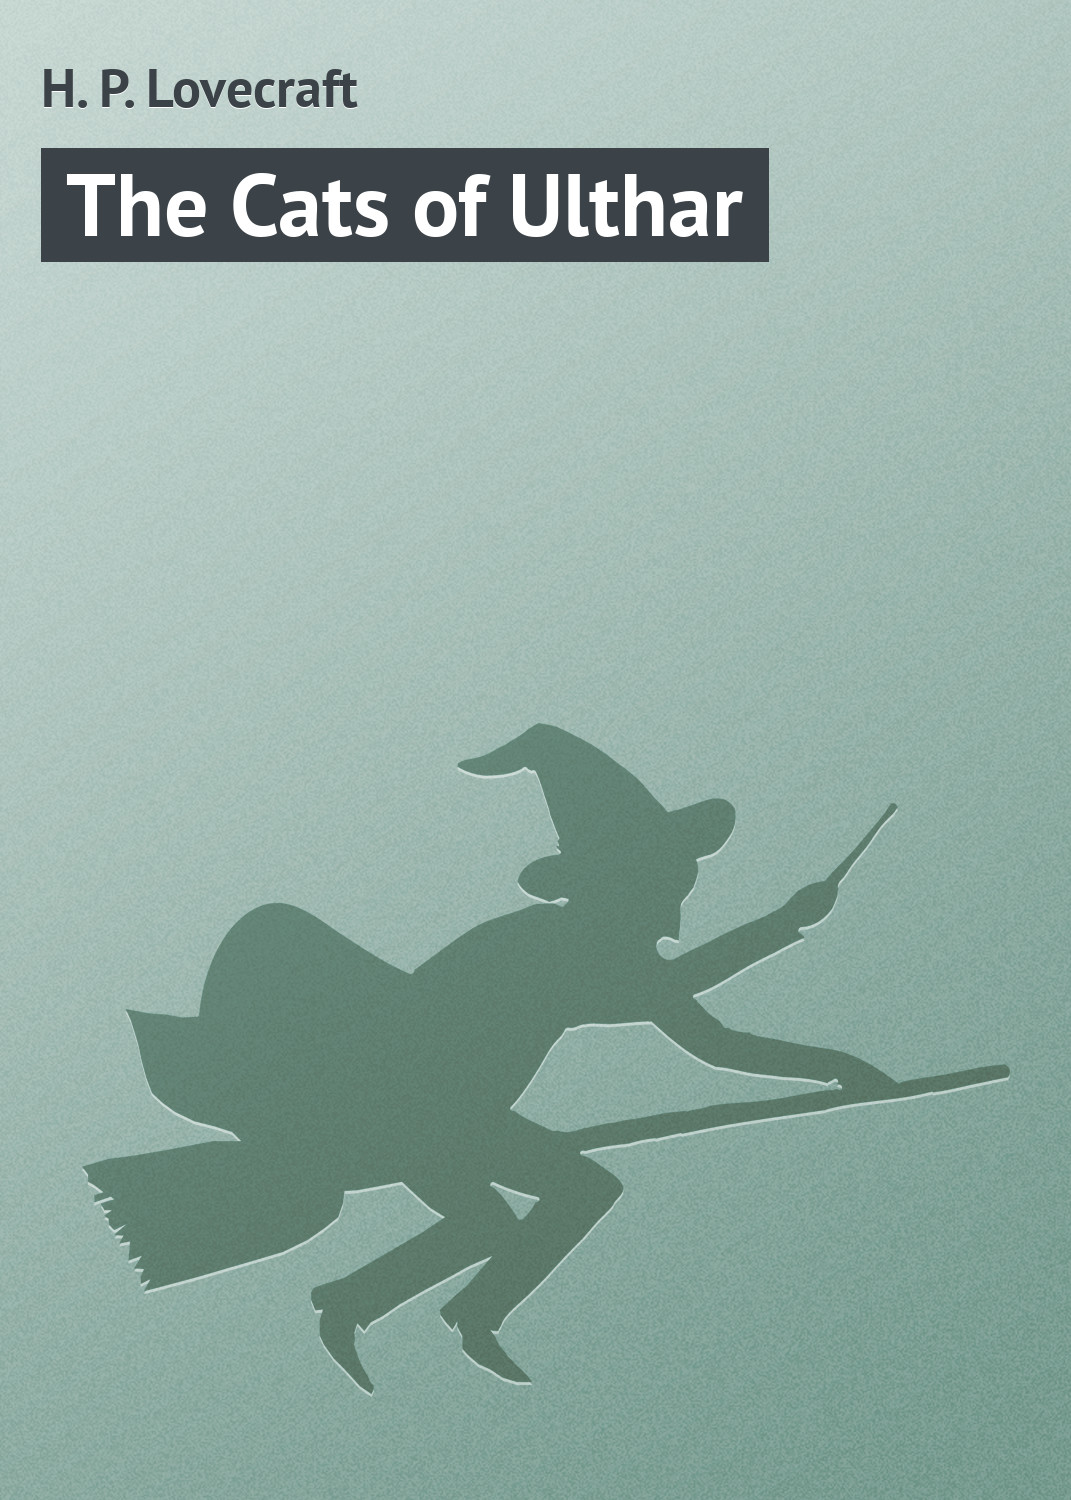 Howard Phillips Lovecraft The Cats of Ulthar